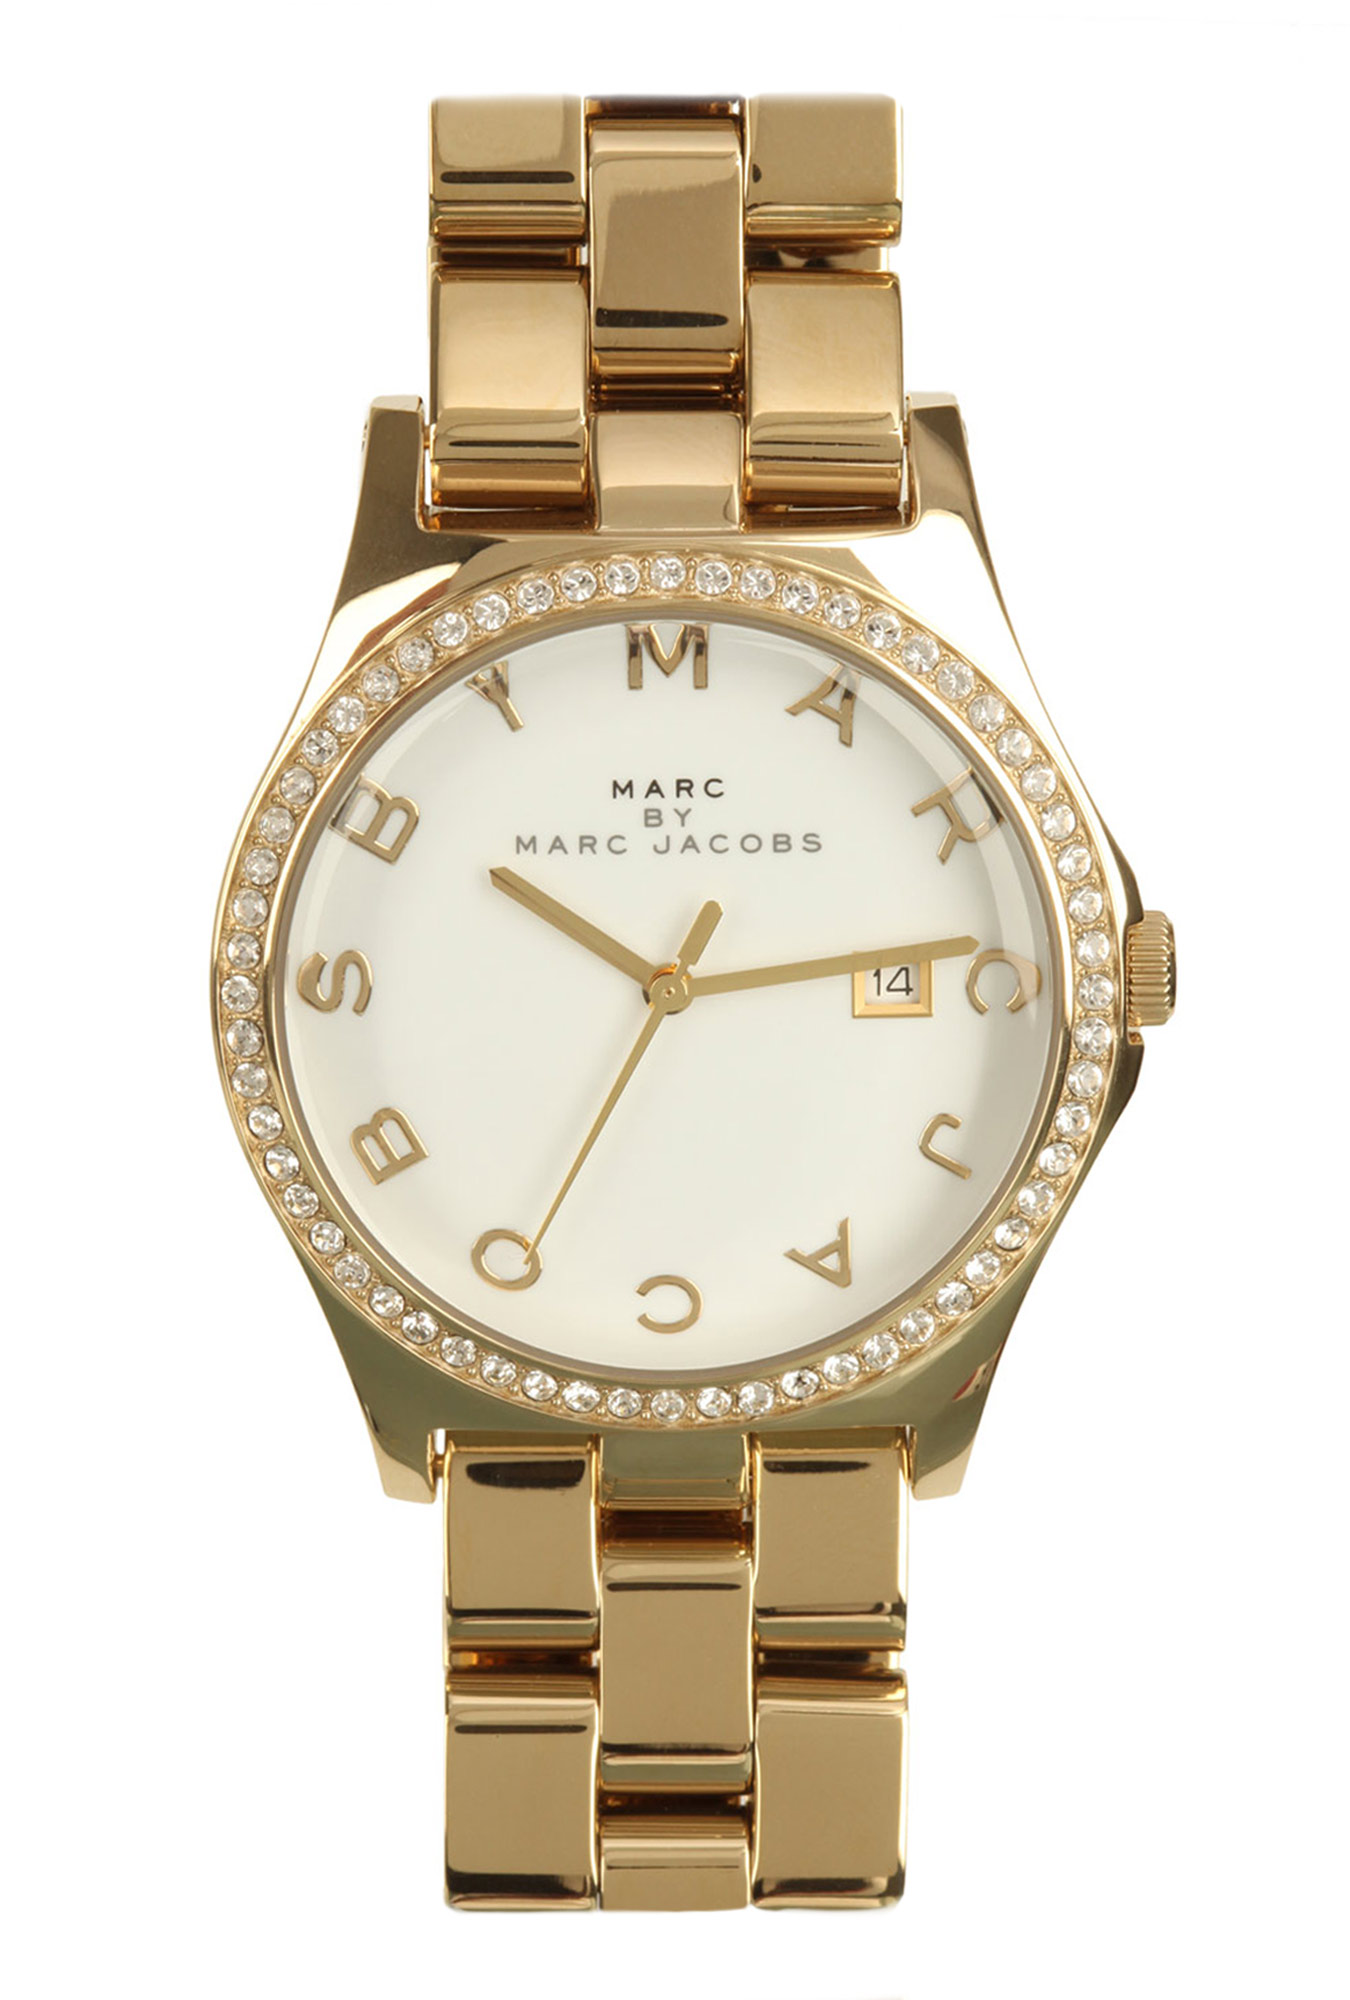 Marc by Marc Jacobs Hottest Watches for Women